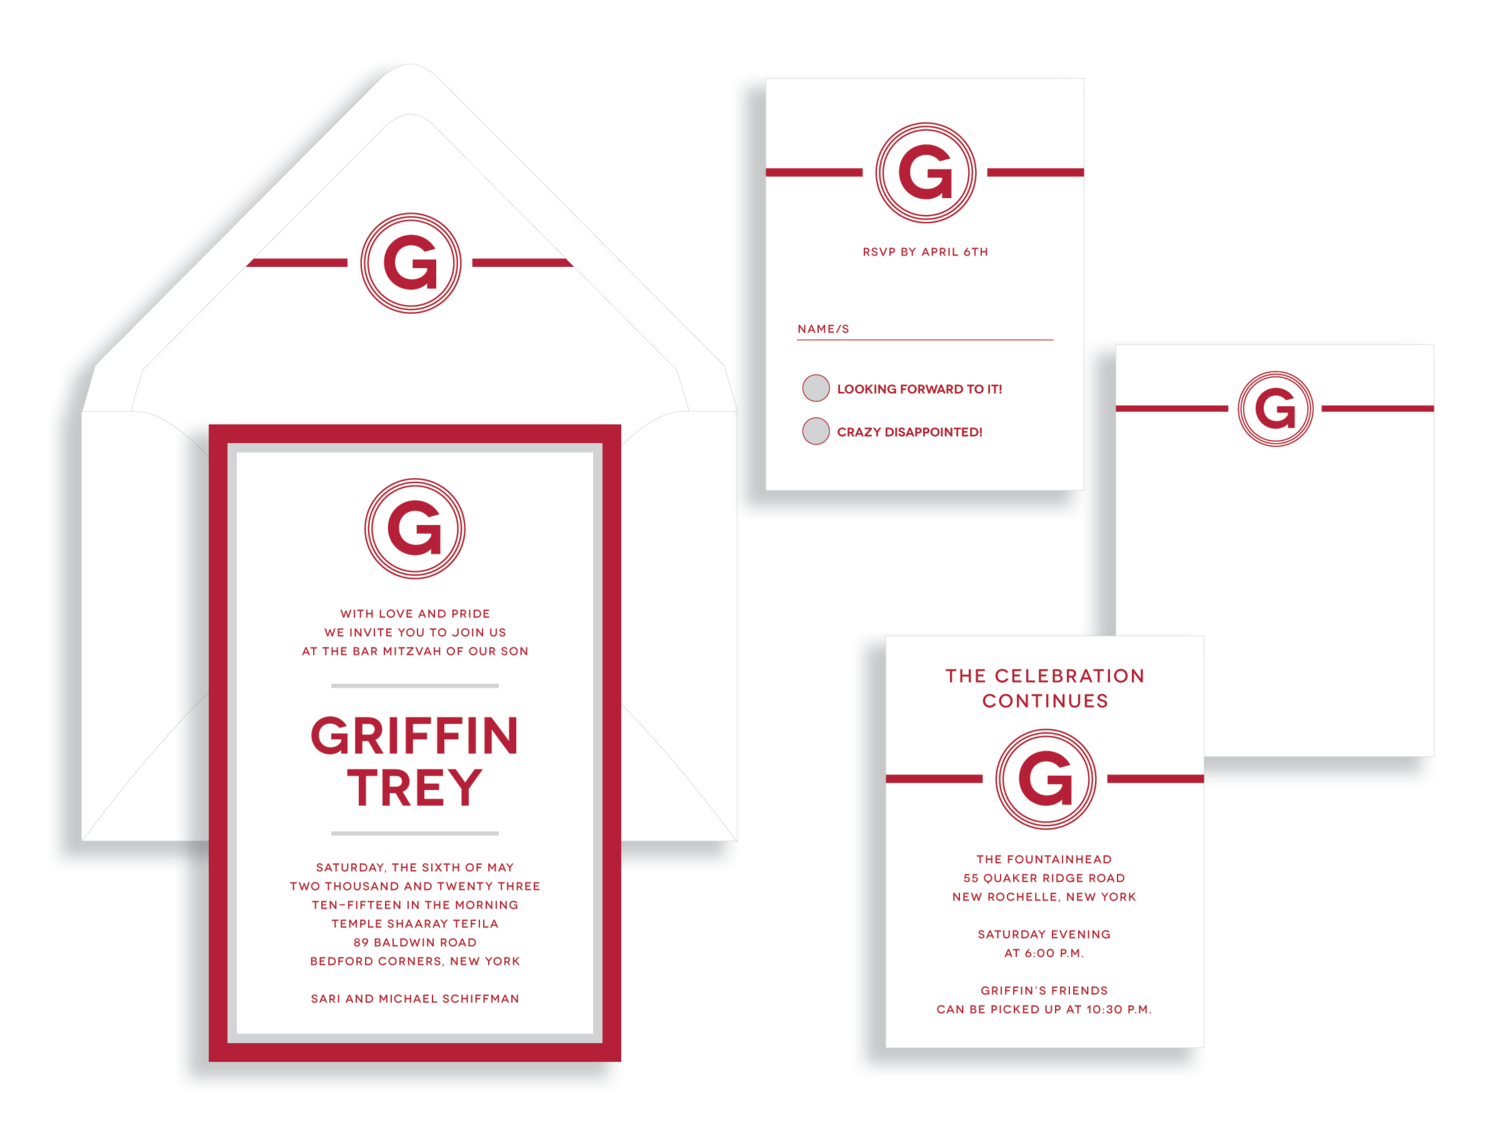 Griffin Bar Mitzvah invitation in red and silver.  Bar Mitzvah invitation available in Fairfax Virginia from Staccato.